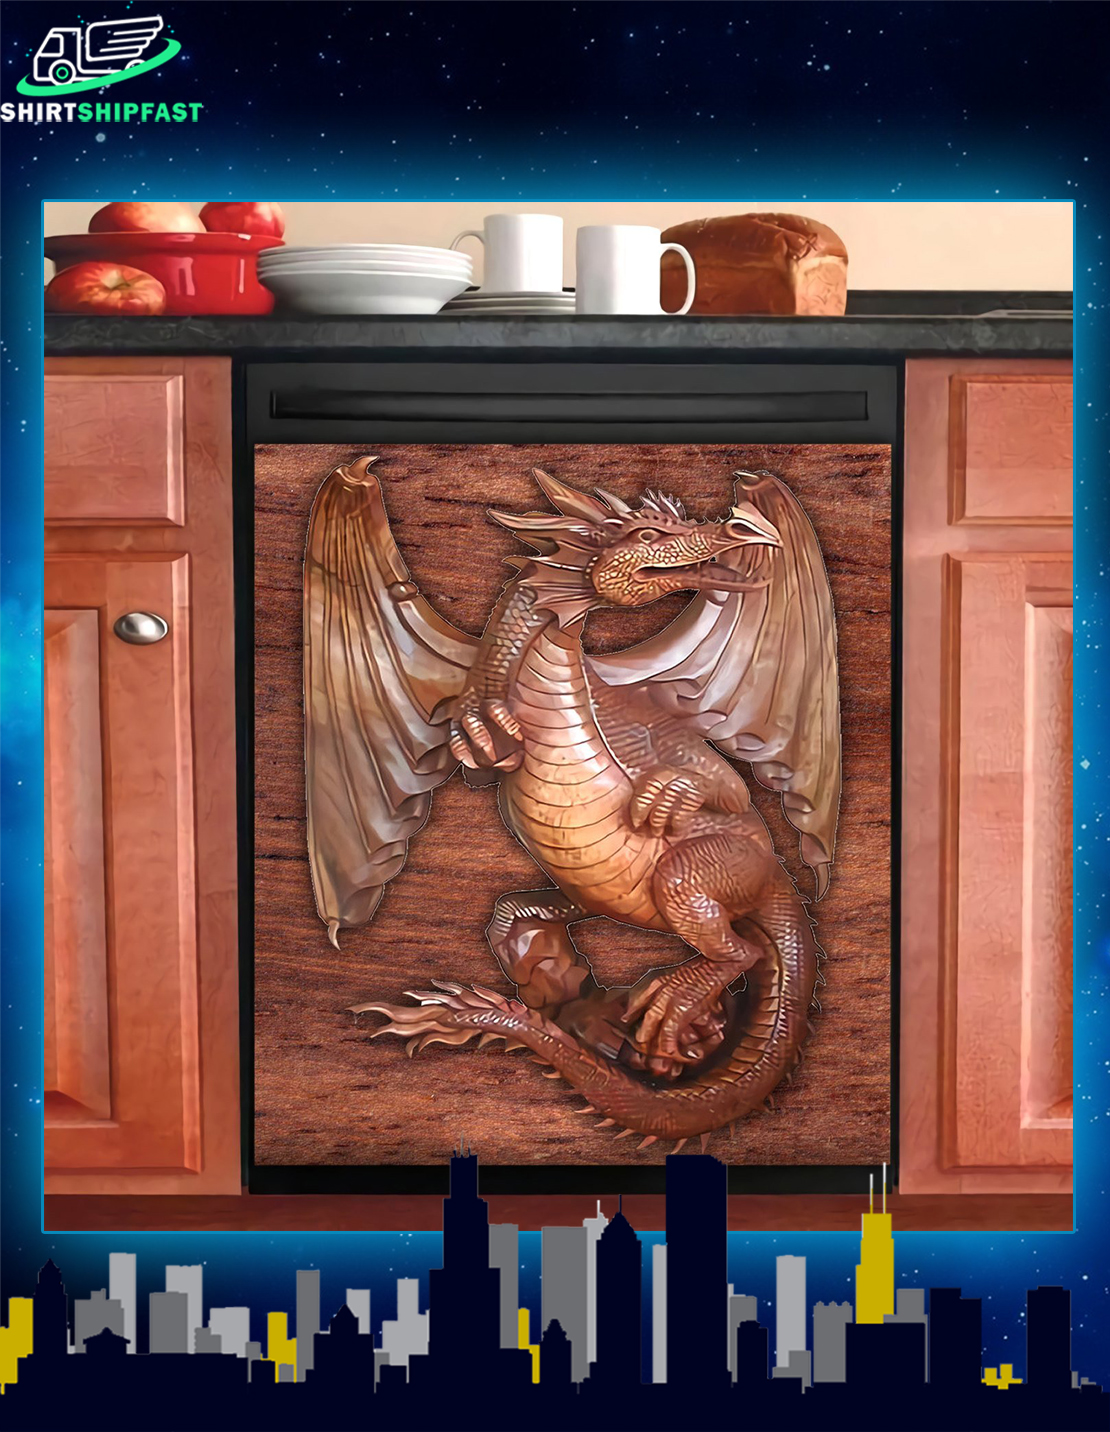 Dragon kitchen dishwasher cover - Picture 1